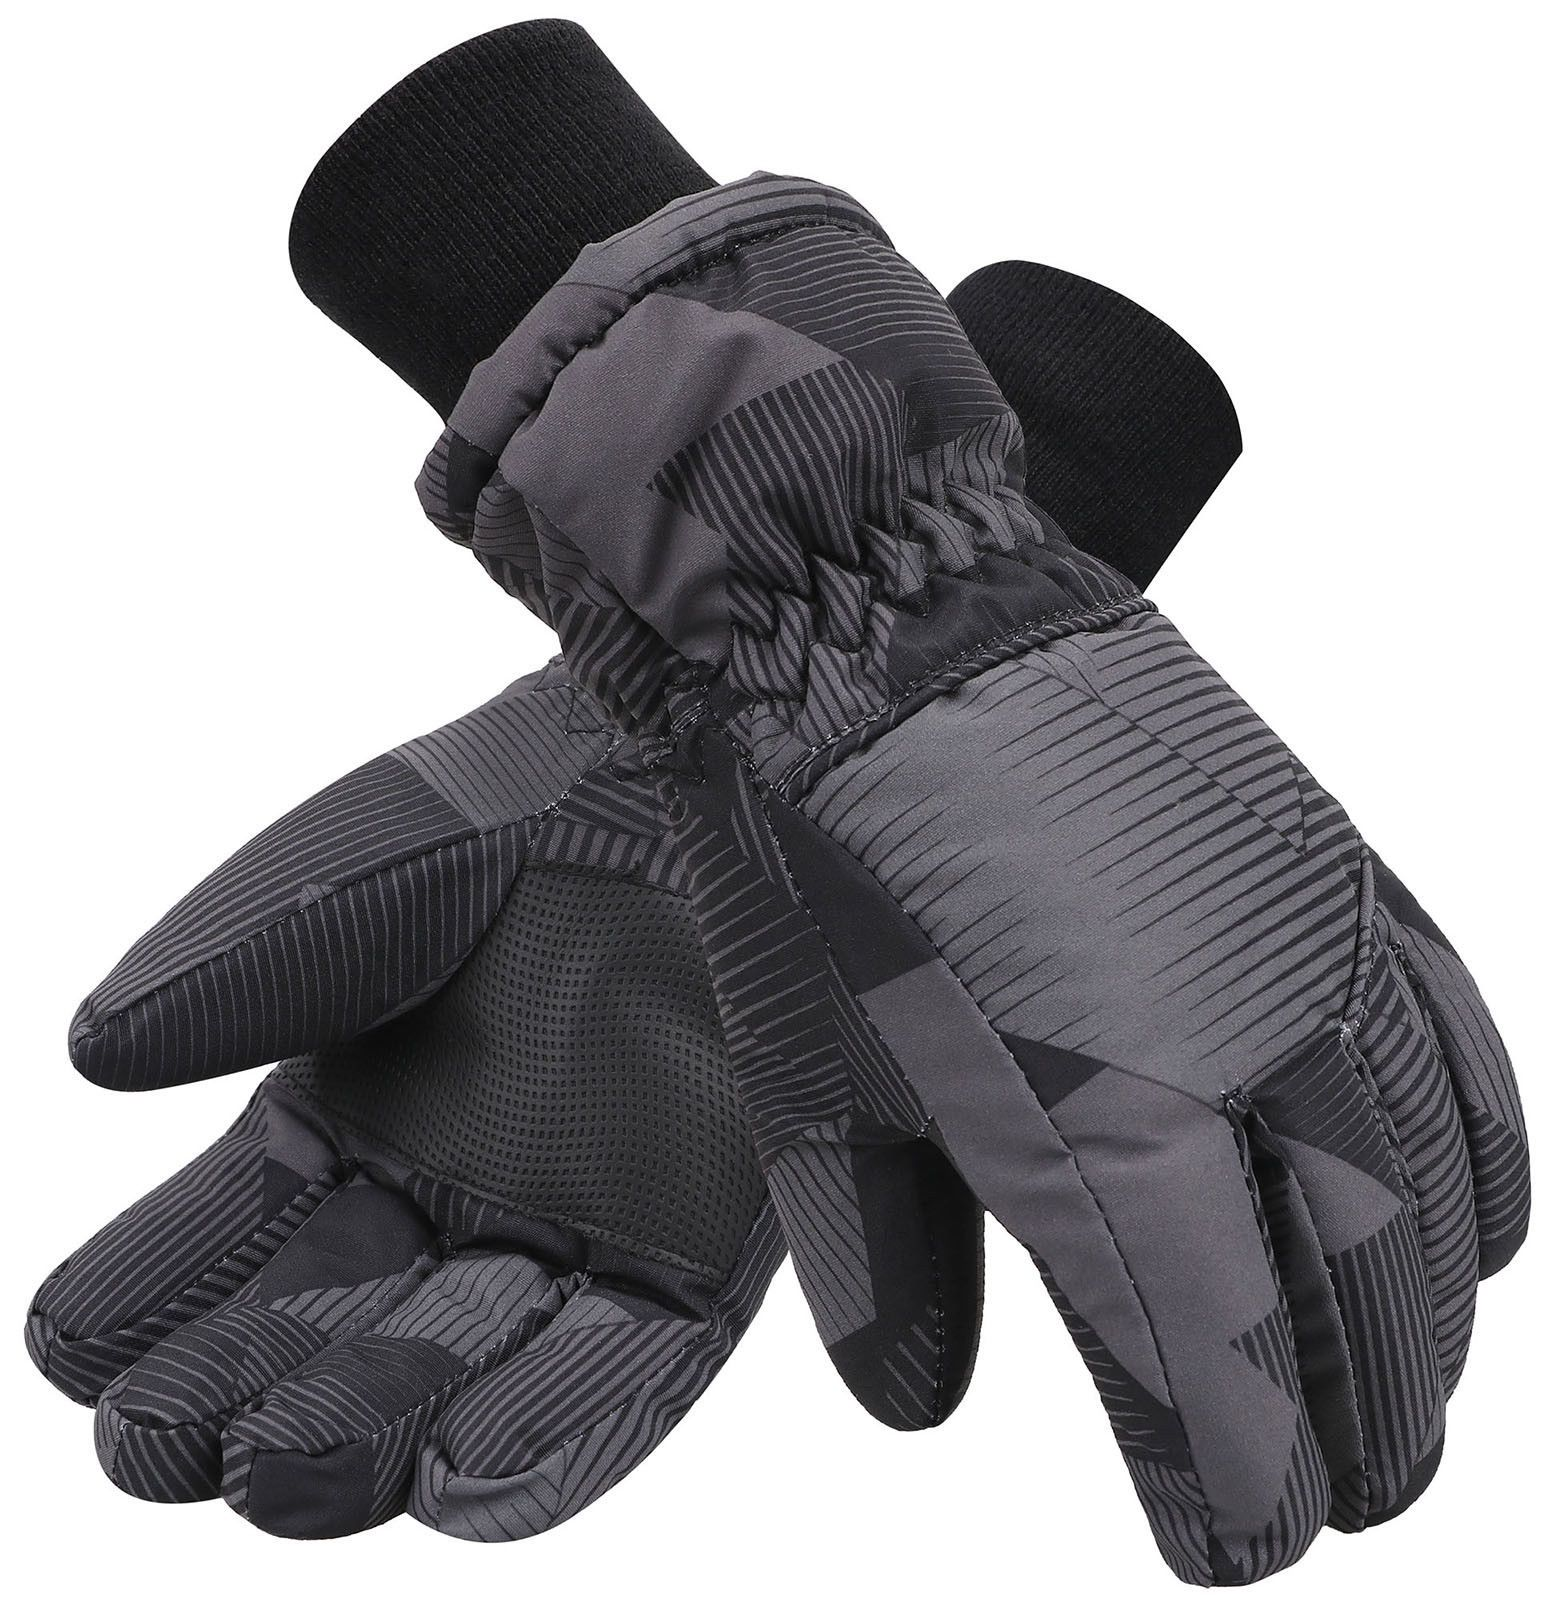 29d3c176b Gloves and Mittens 57885: New Boys Kids 3M Thinsulate Waterproof Ski Gloves  Winter Sport Warm Snow Mittens -> BUY IT NOW ONLY: $13.97 on #eBay #gloves  ...